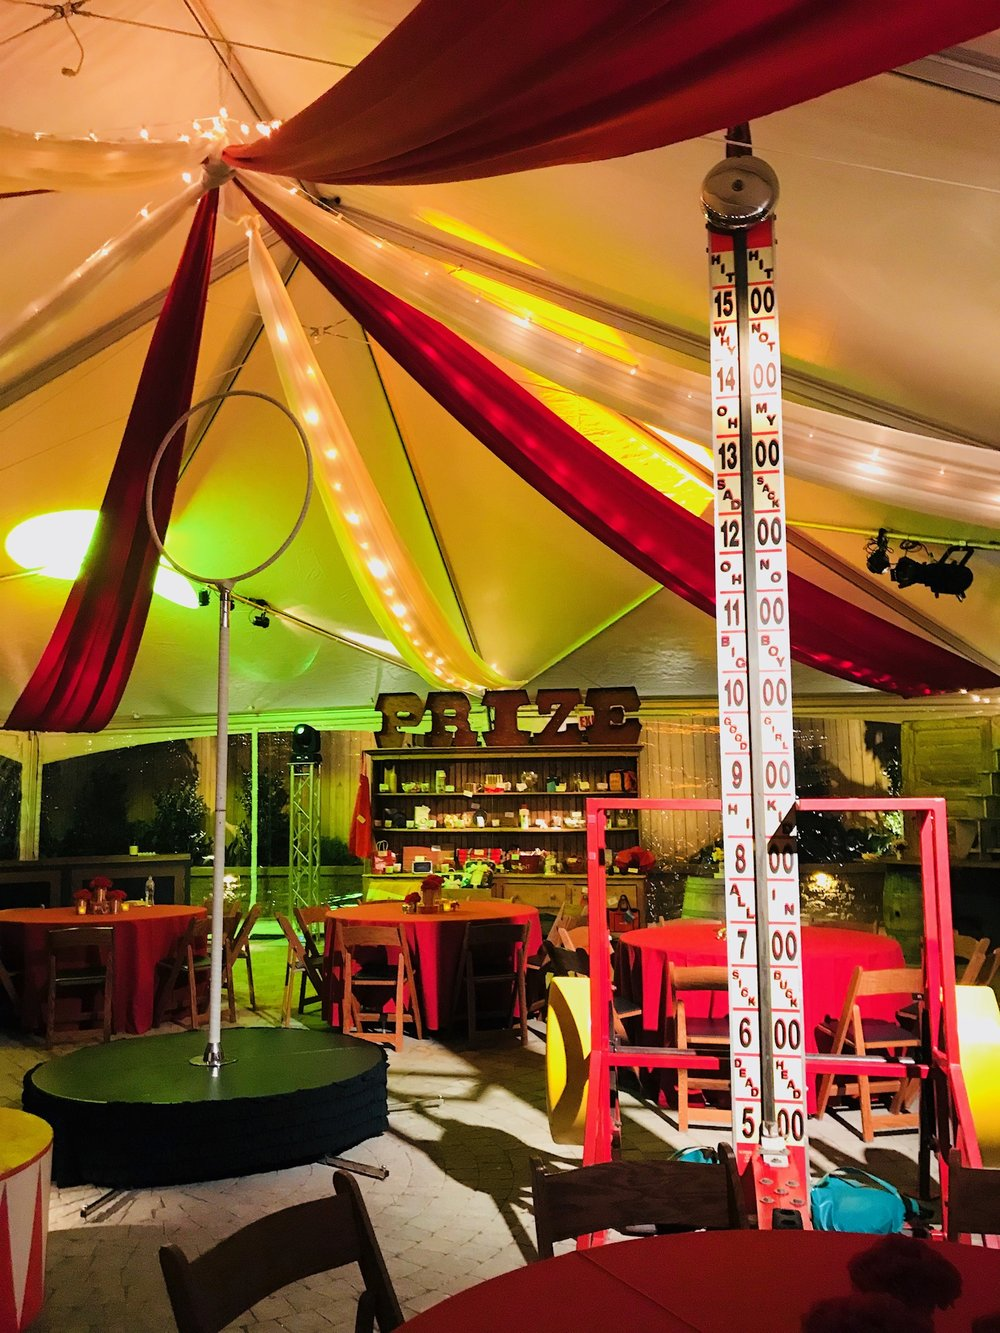 Tent with lights and additional flairs of color and decor.